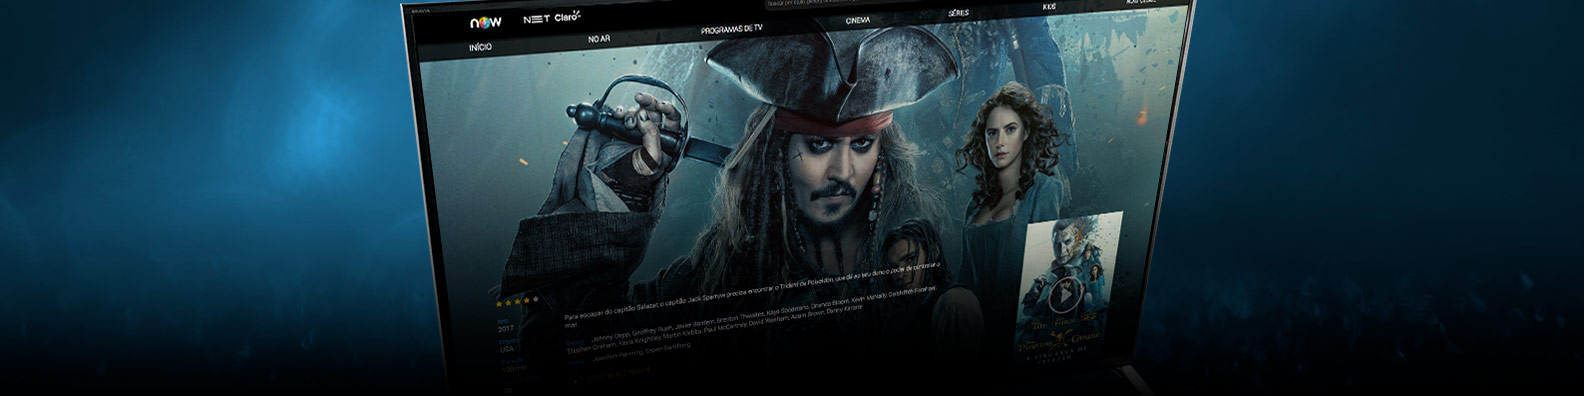 Piratas do caribe no Now online